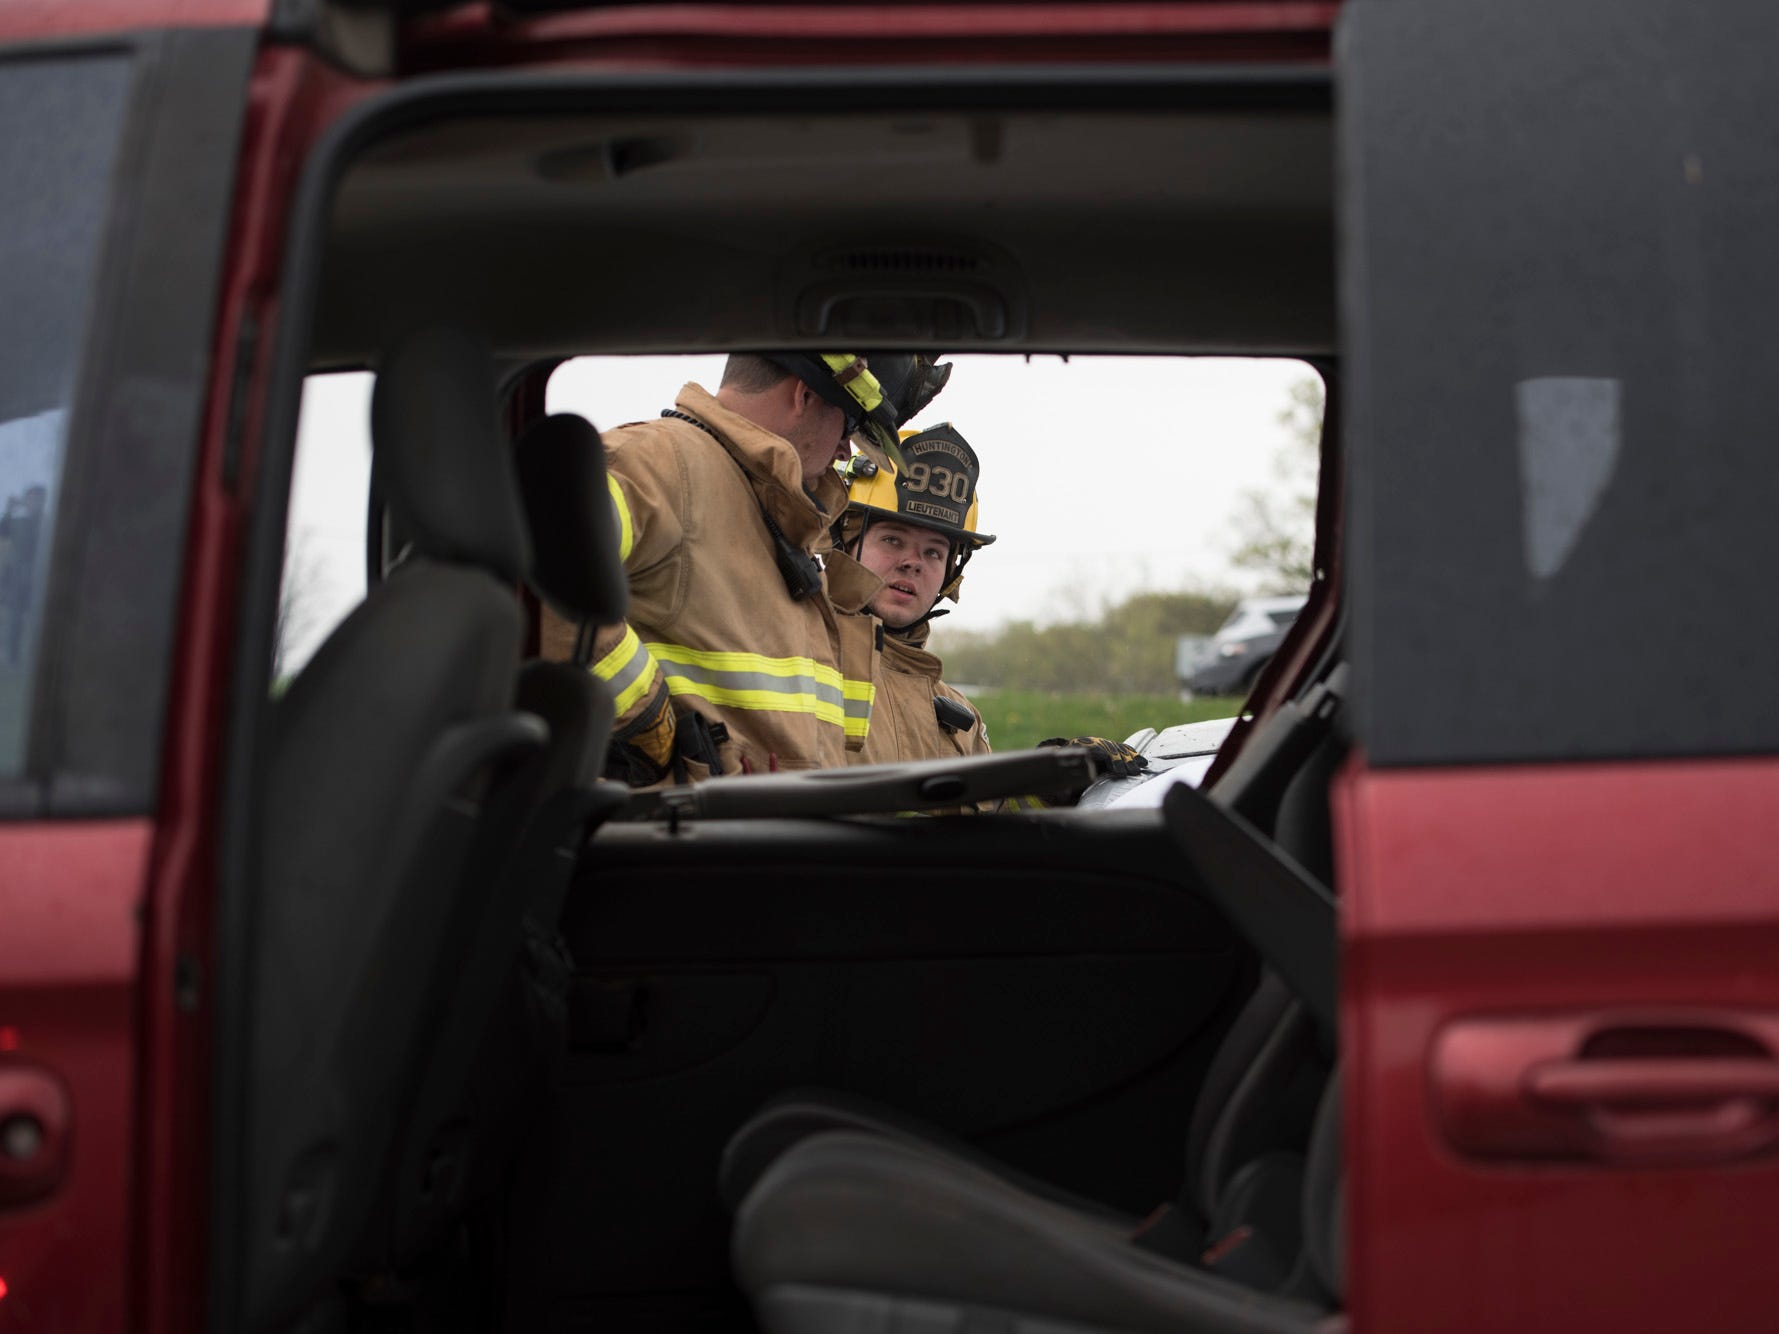 With the help of local police forces and fire departments, Paint Valley and Huntington local schools held mock crashes to show how drinking and driving can have dangerous consequences.